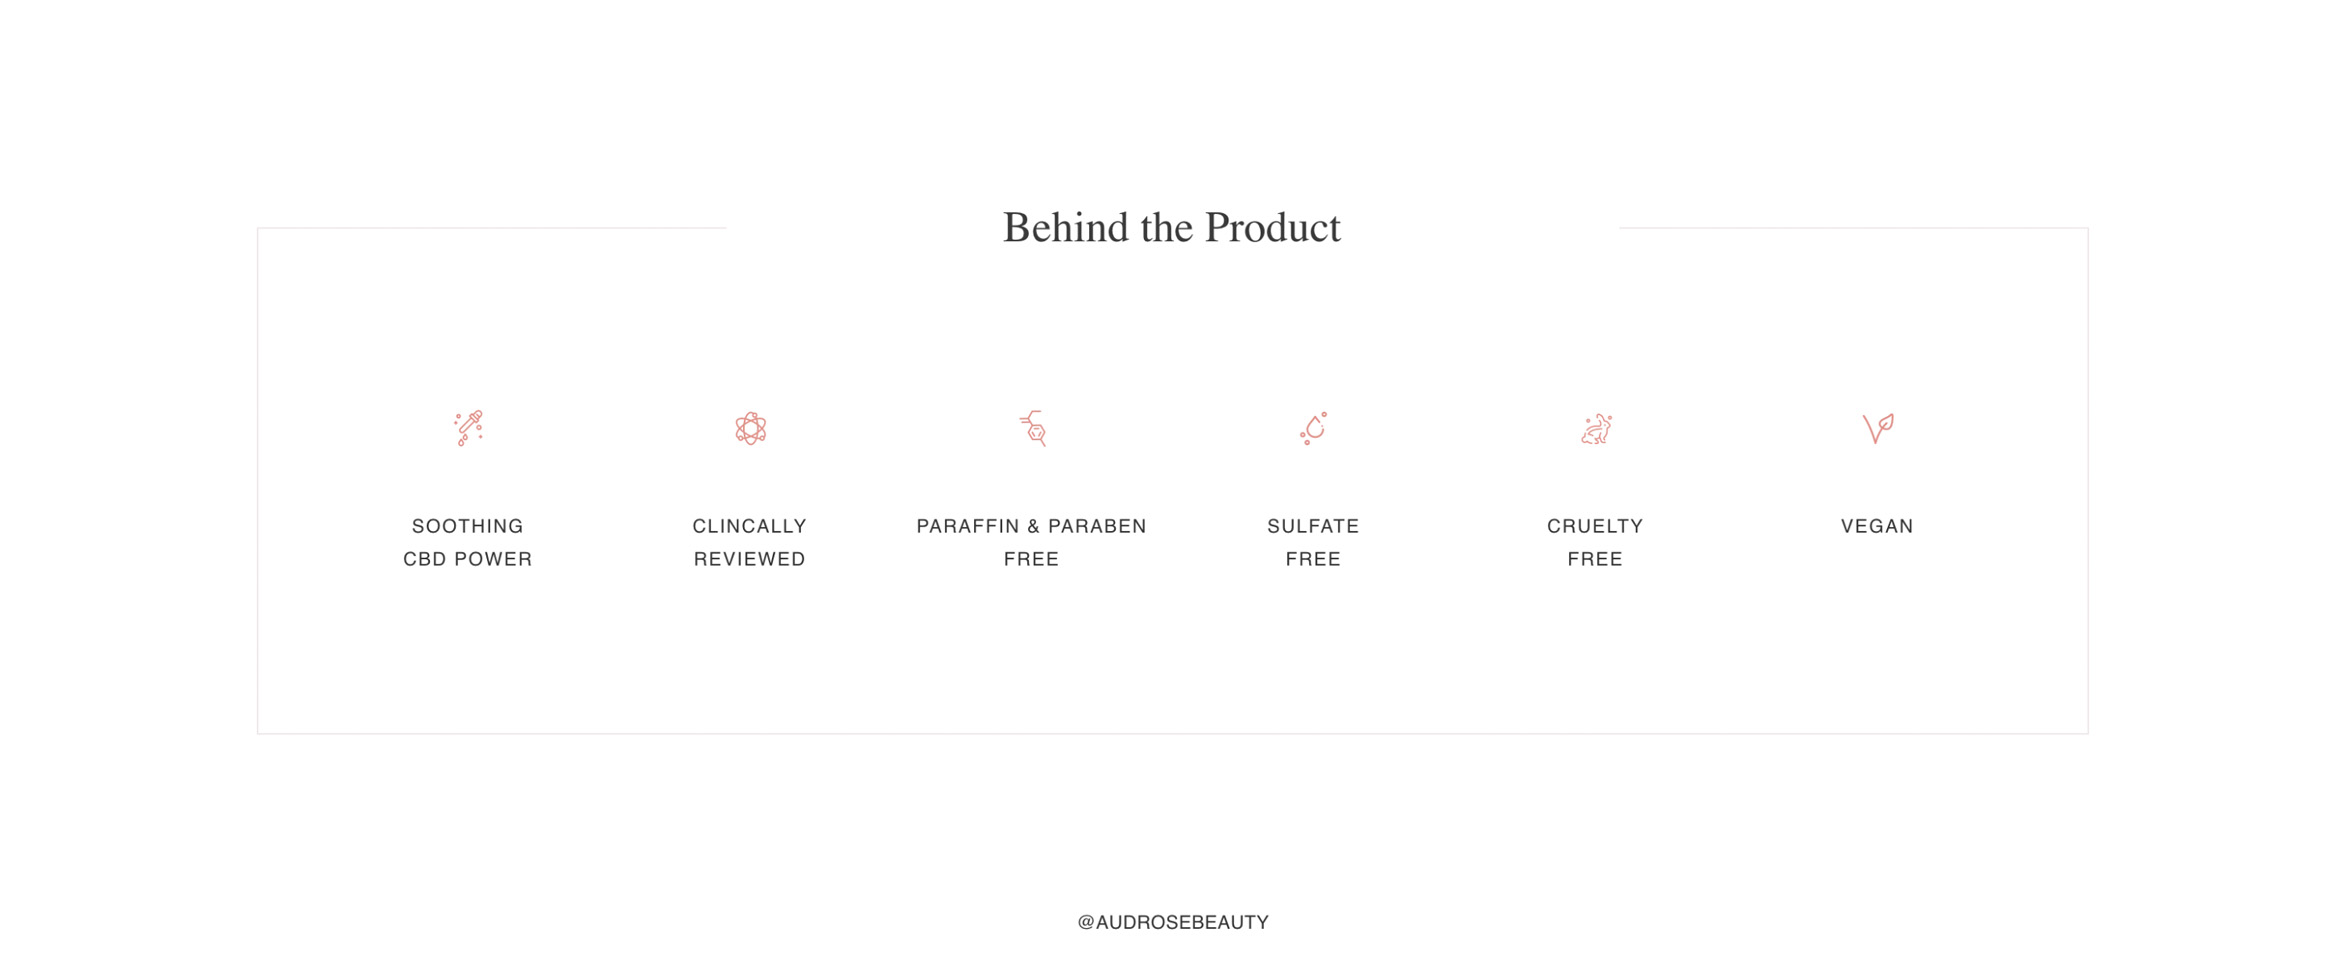 Creating a Calm and Serene Ecommerce Presence for an Elevated CBD Skincare Brand Build Image-2